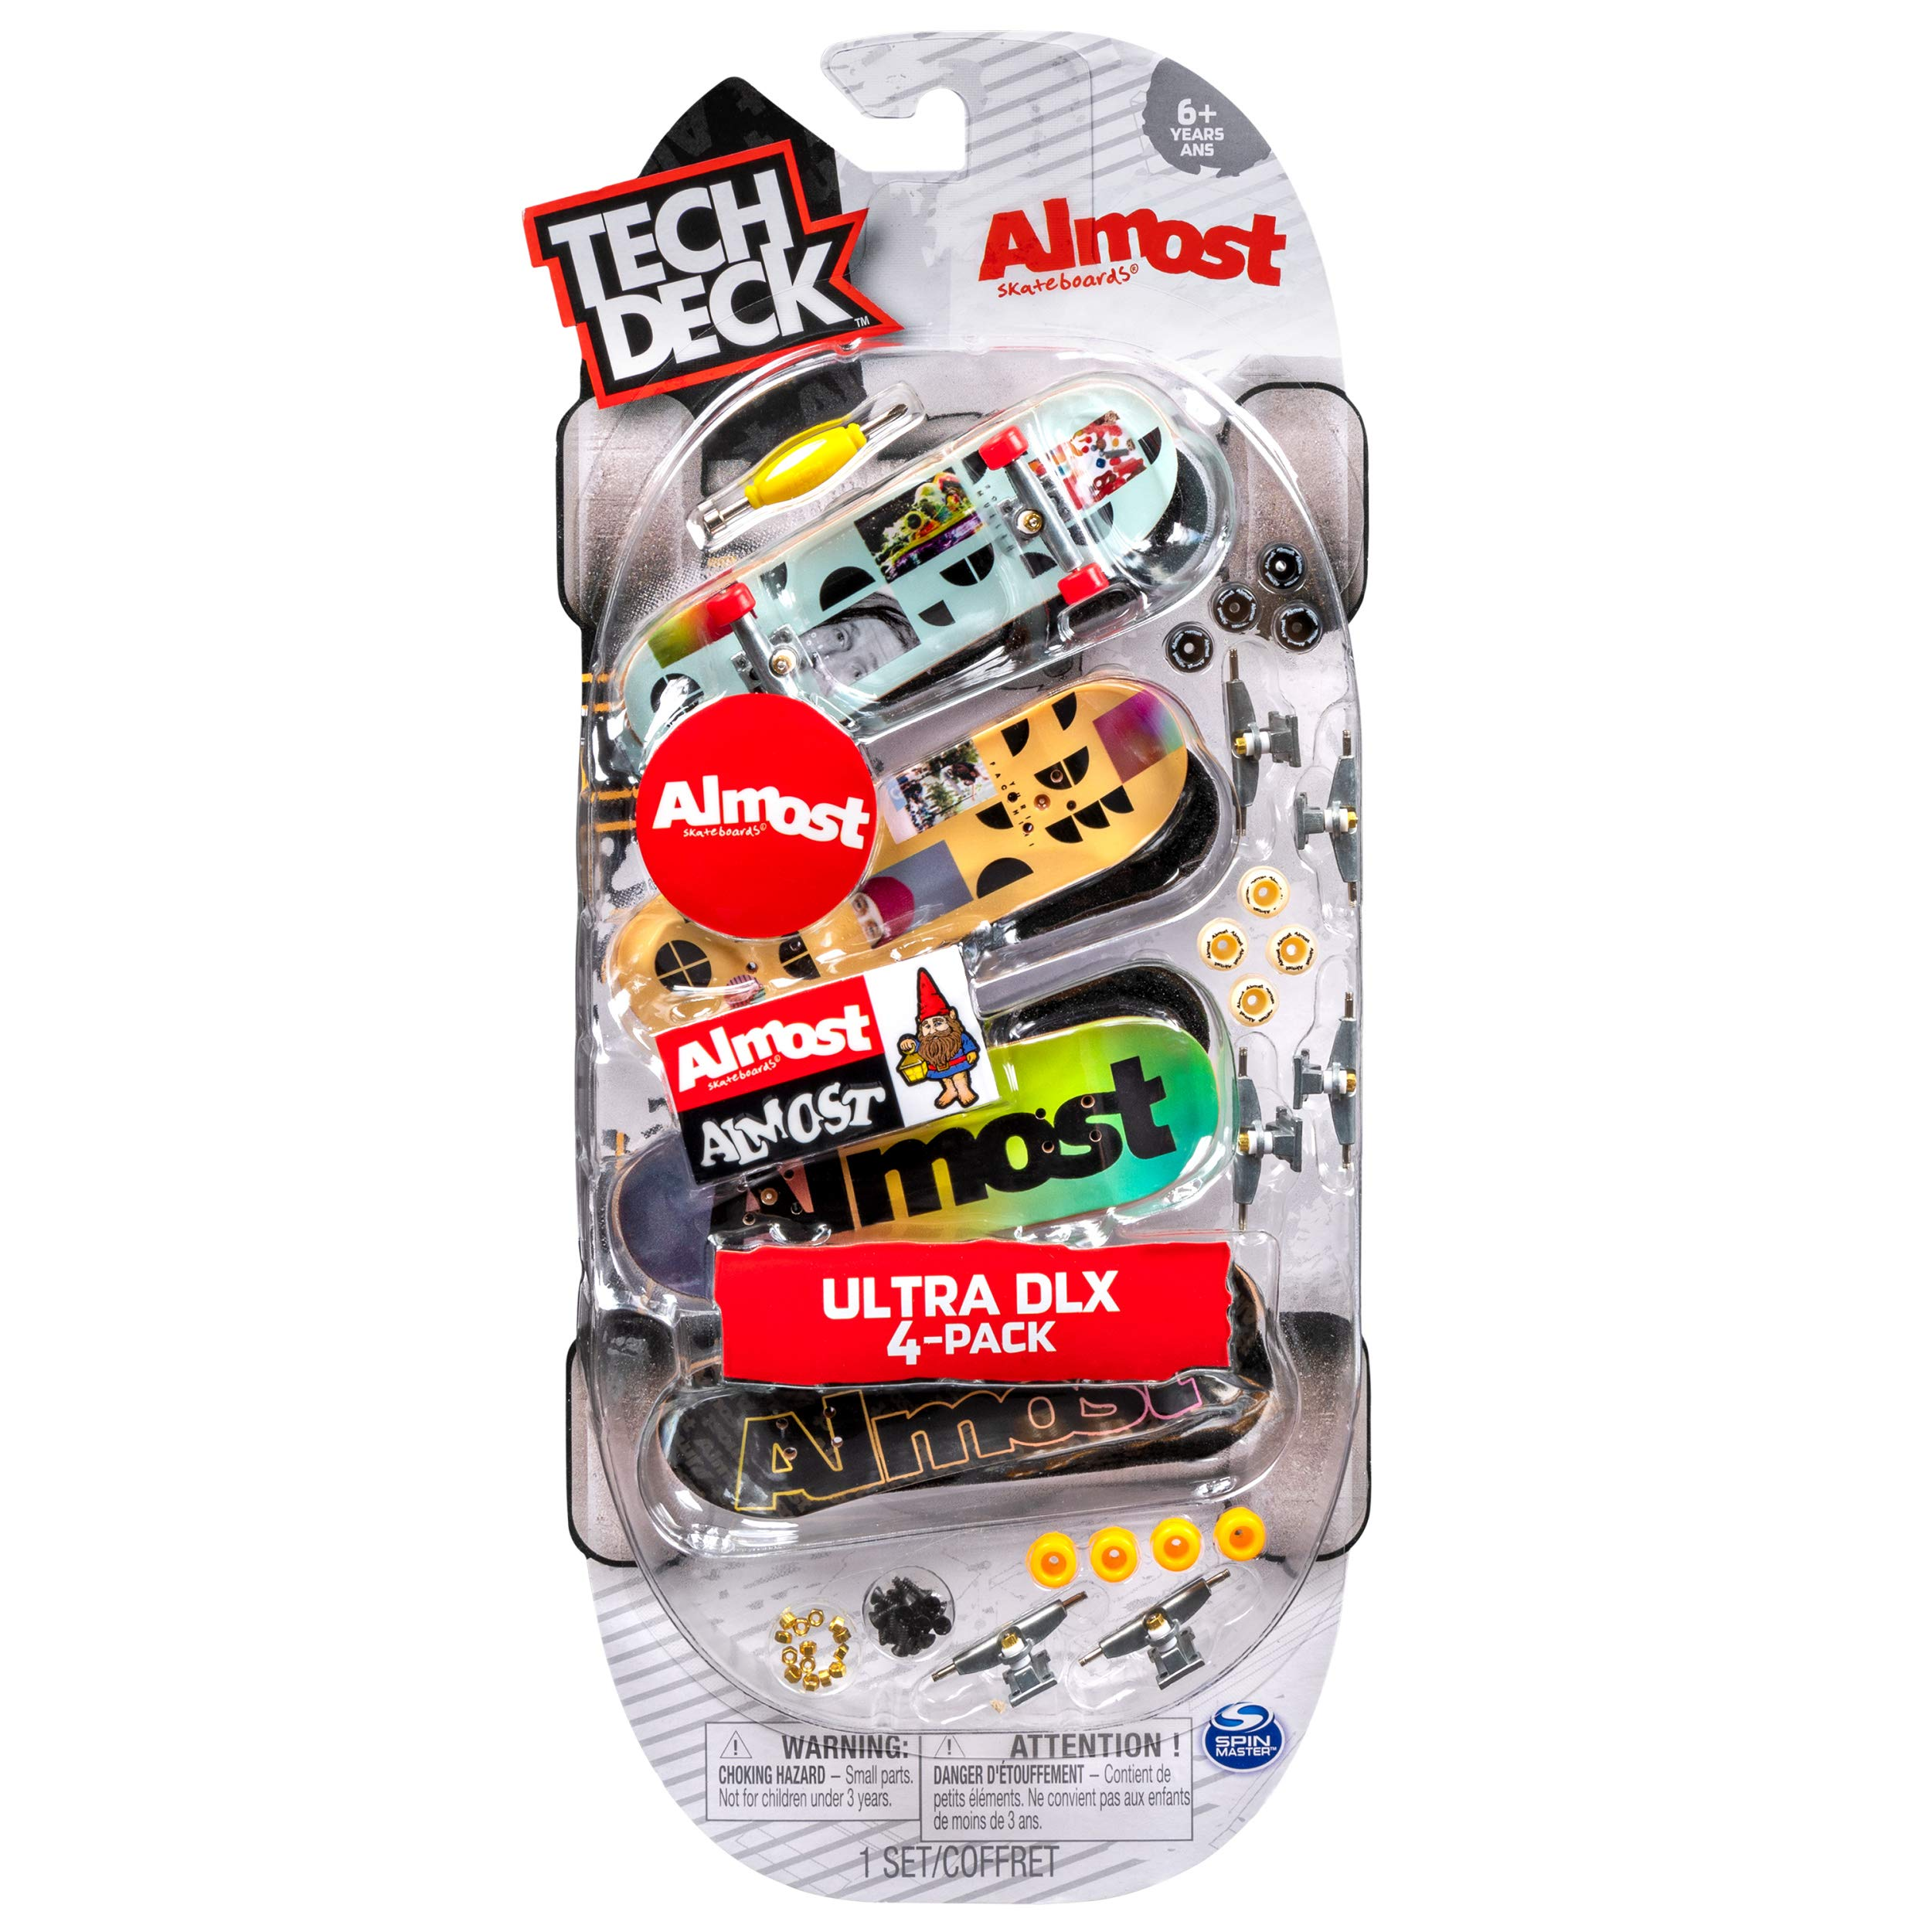 Tech Deck Ultra DLX 4 Pack Almost from Little Folks by TECH DECK